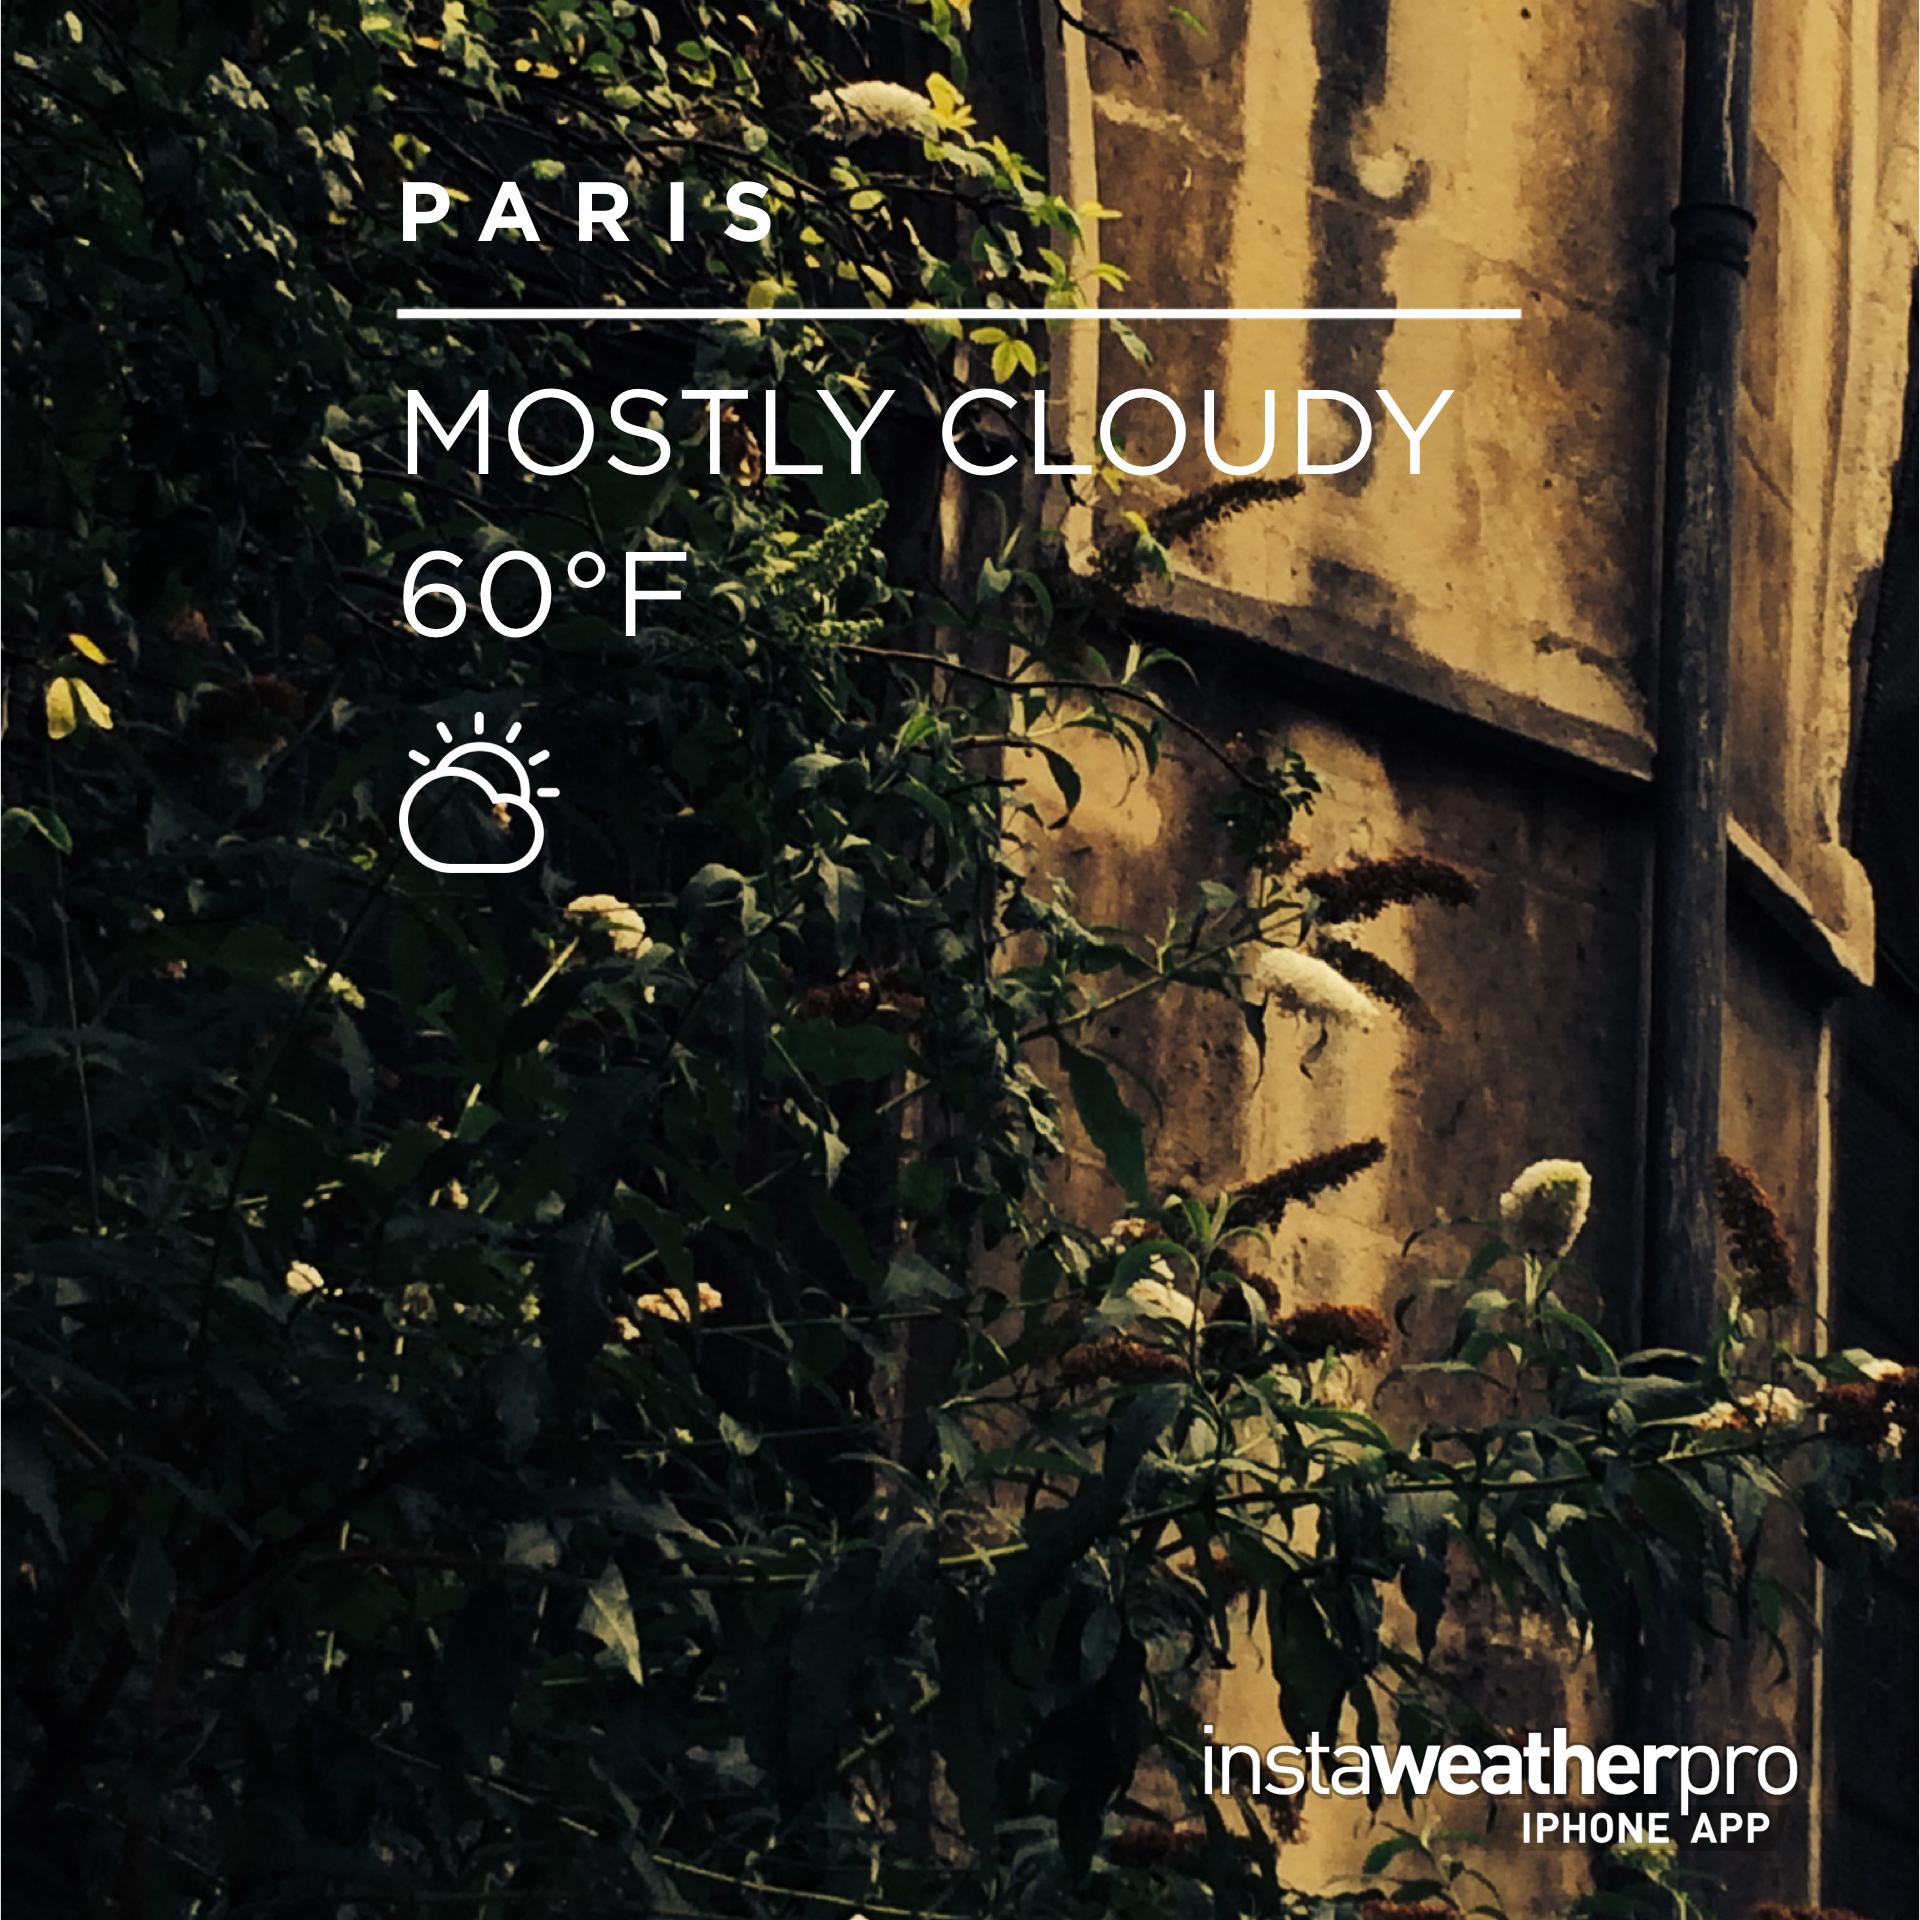 Well instaweather chéri...it was actually raining...but you got the temperature right!